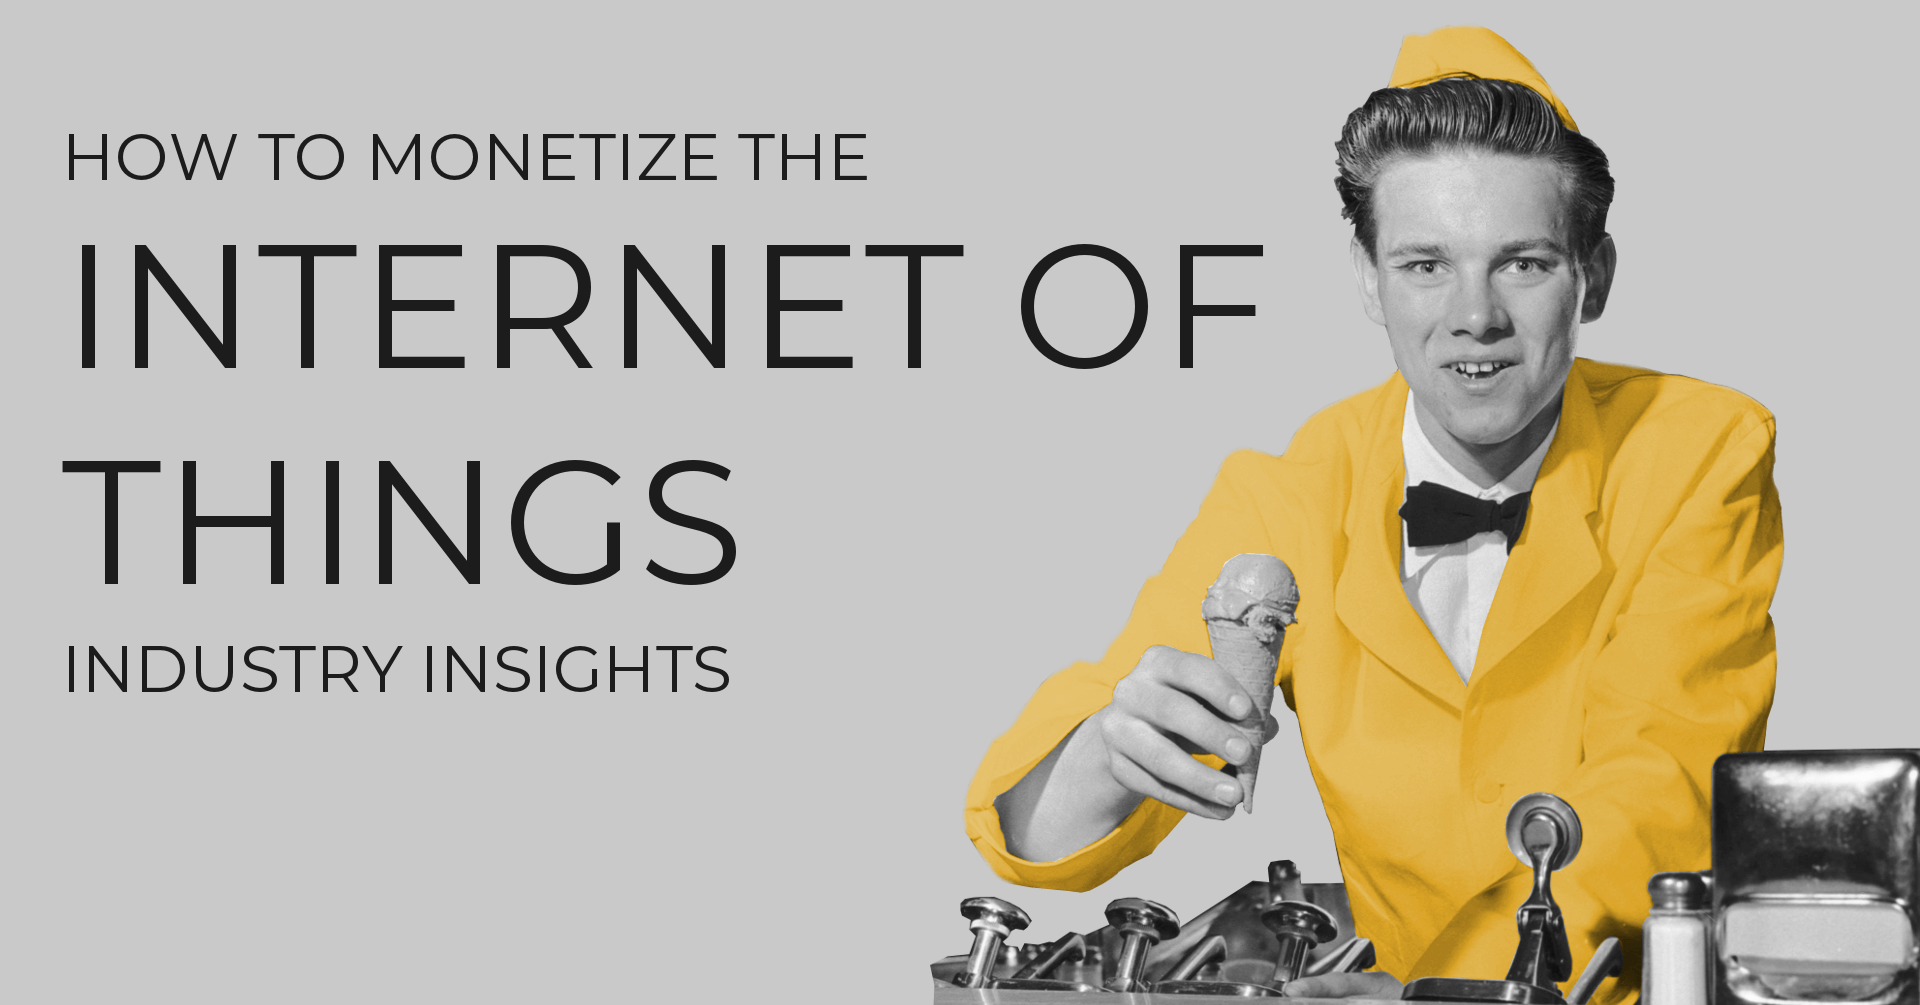 How to Monetize the Internet of Things